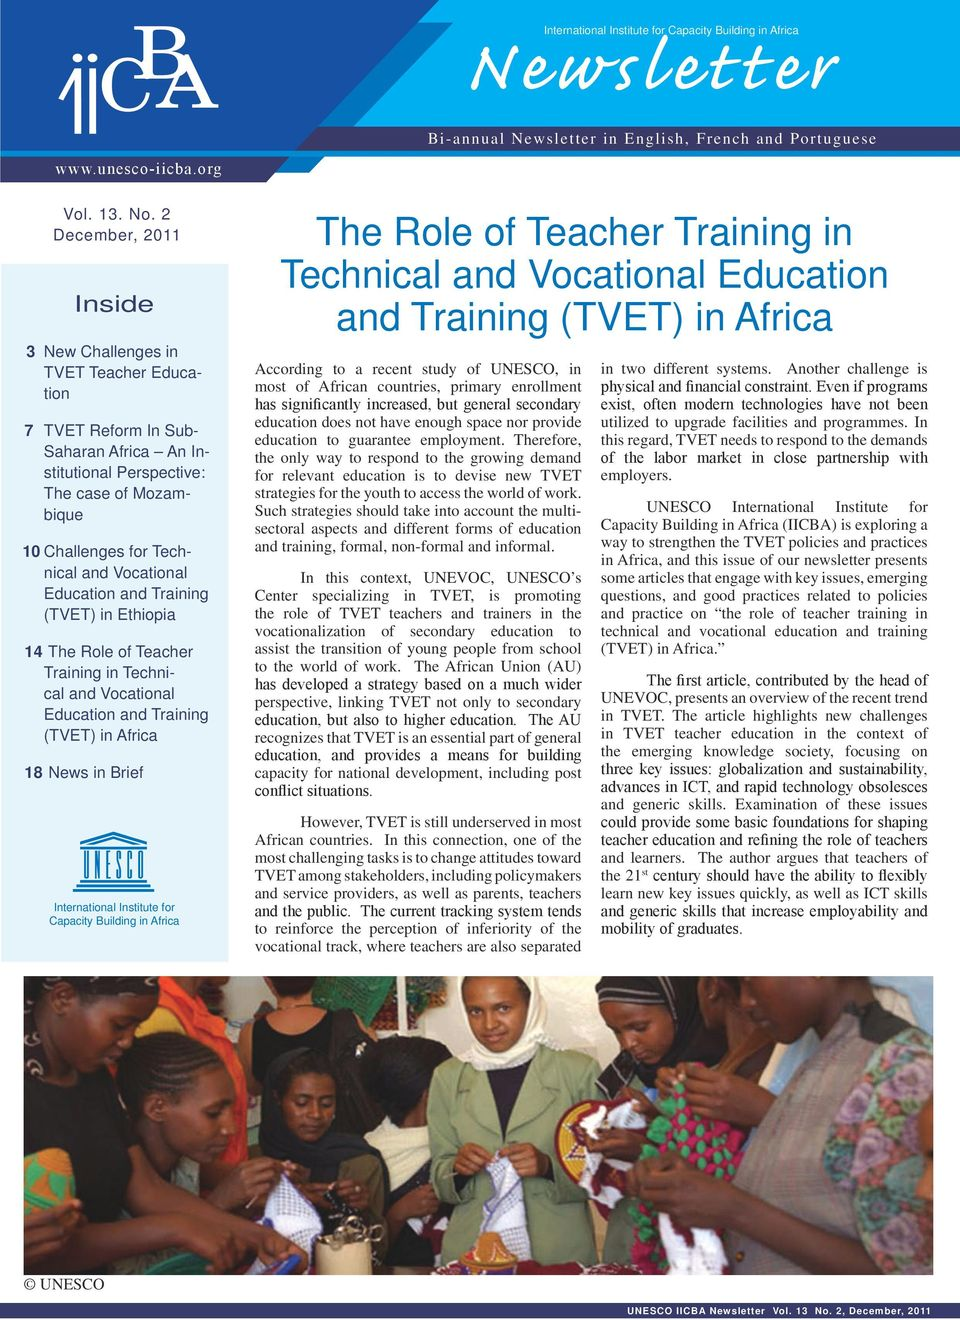 Education and Training (TVET) in Ethiopia 14 The Role of Teacher Training in Technical and Vocational Education and Training (TVET) in Africa 18 News in Brief International Institute for Capacity